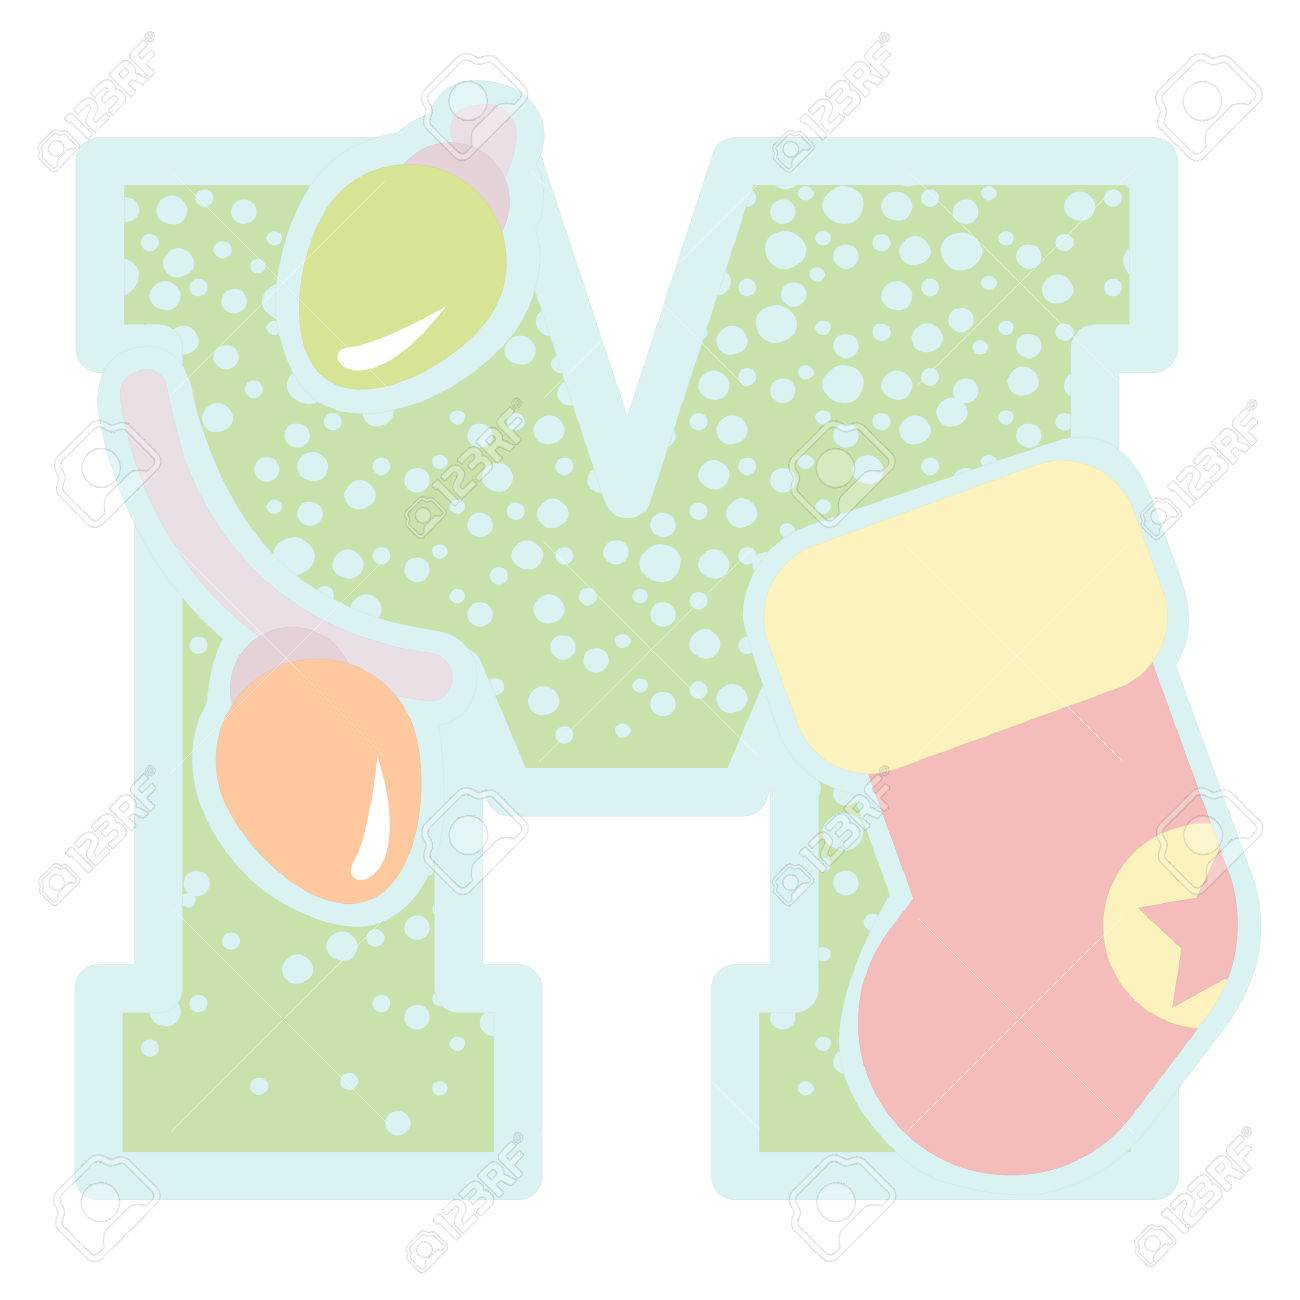 christmas decorative letter m icon royalty free cliparts vectors